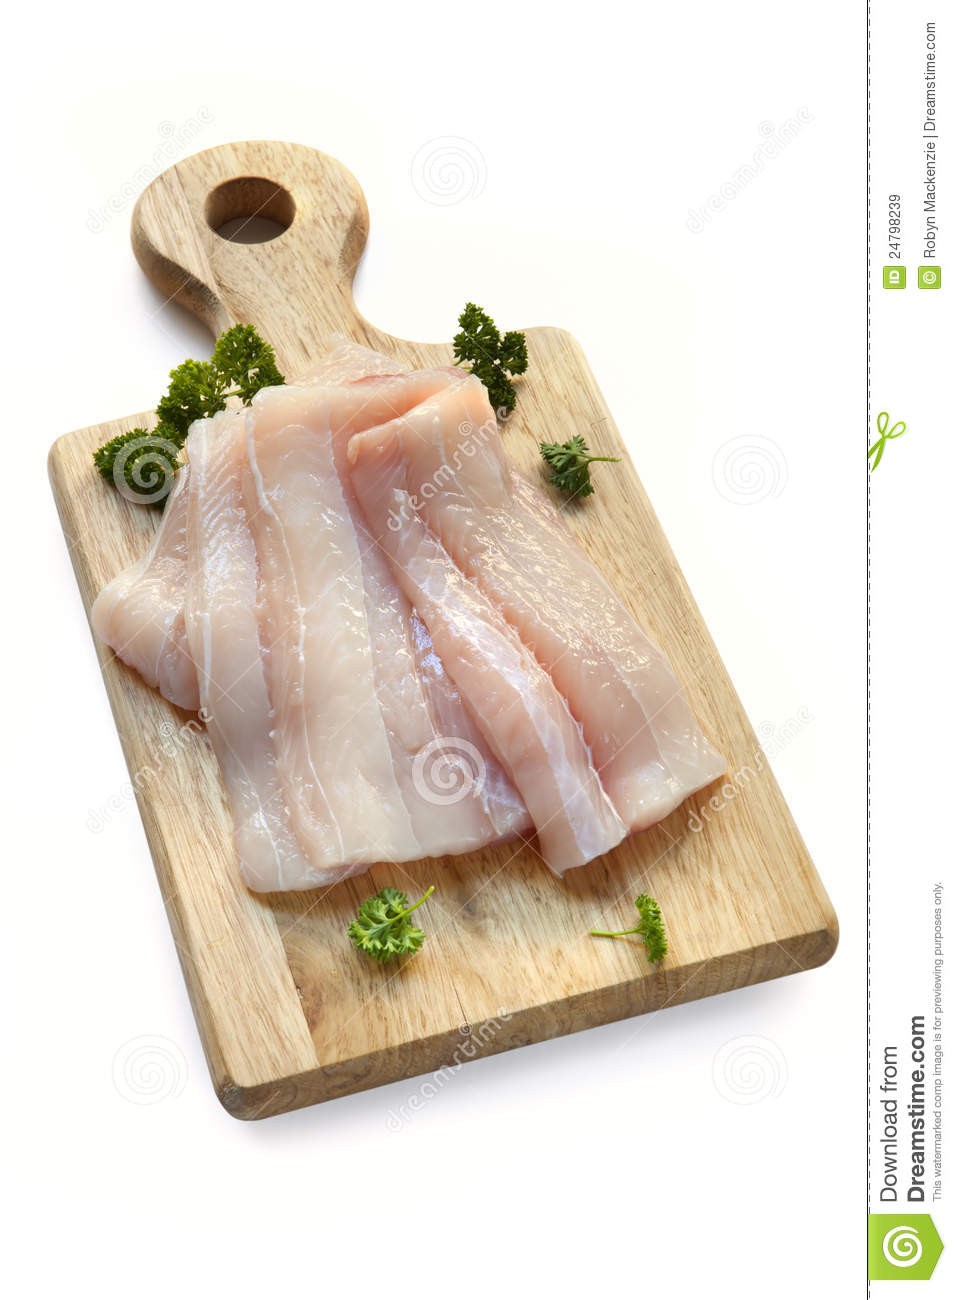 Raw fish fillets on board over white royalty free stock for Fish fillet board